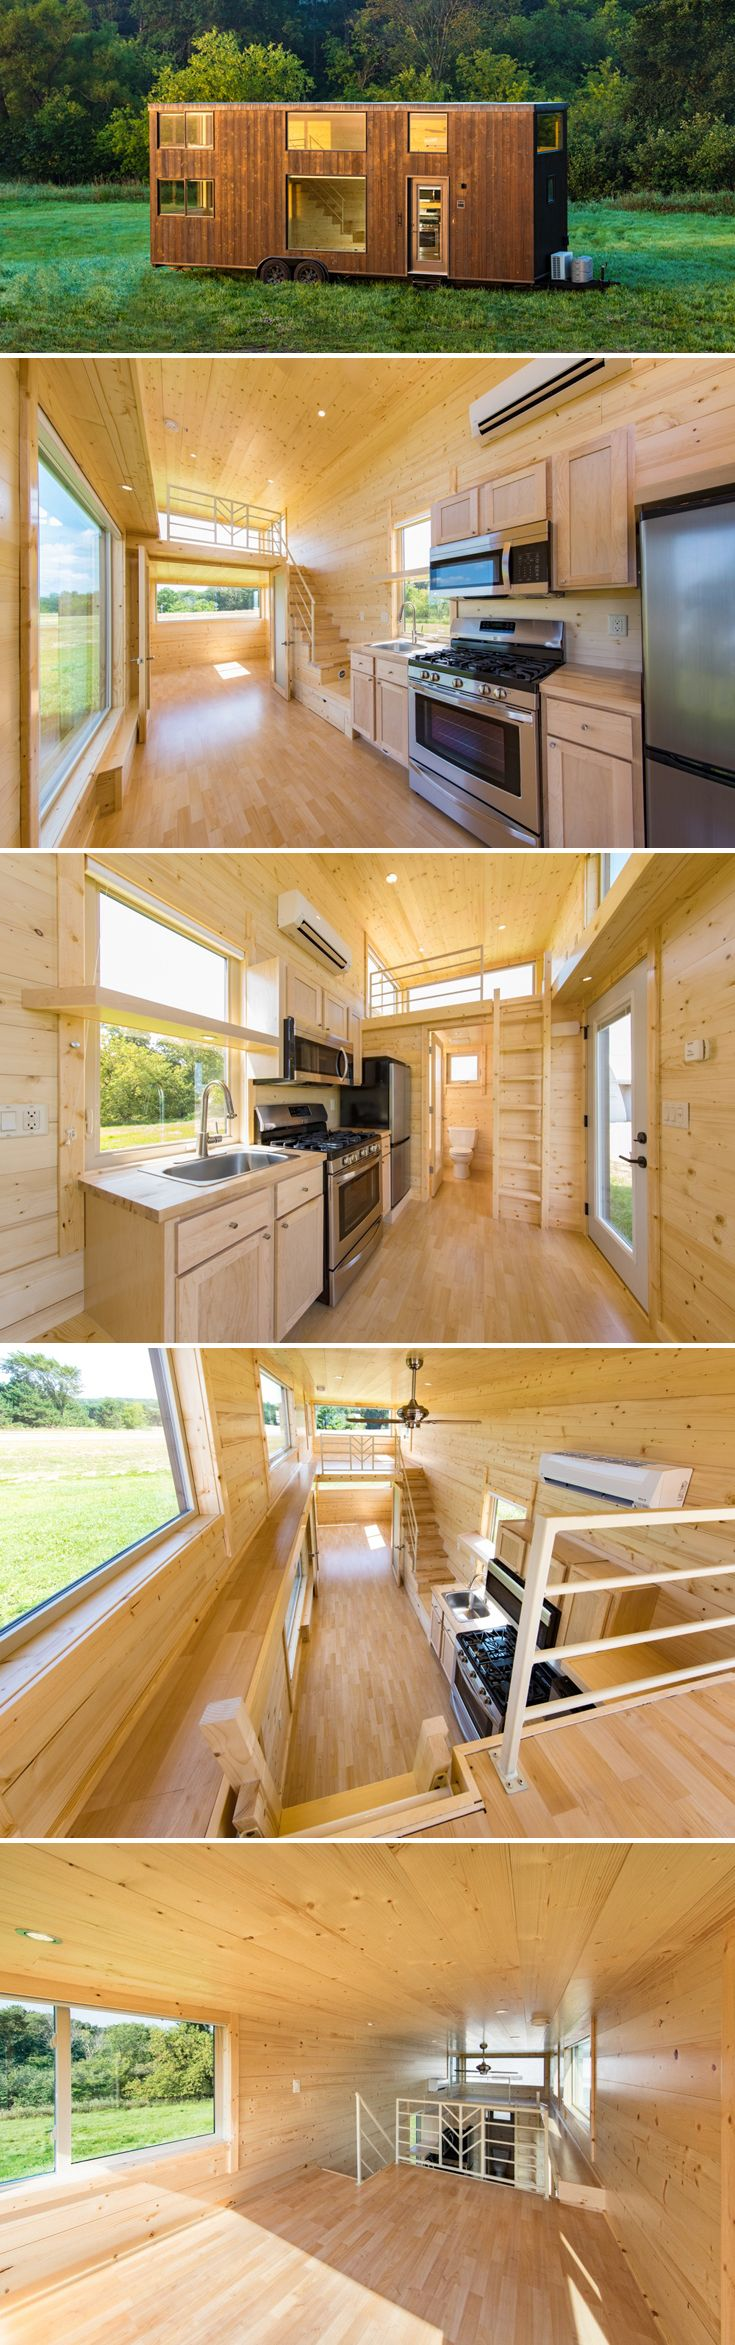 The 30' Escape One XL offers a private main floor bedroom and sleeping loft. Clerestory and picture windows provide an abundance of natural light.